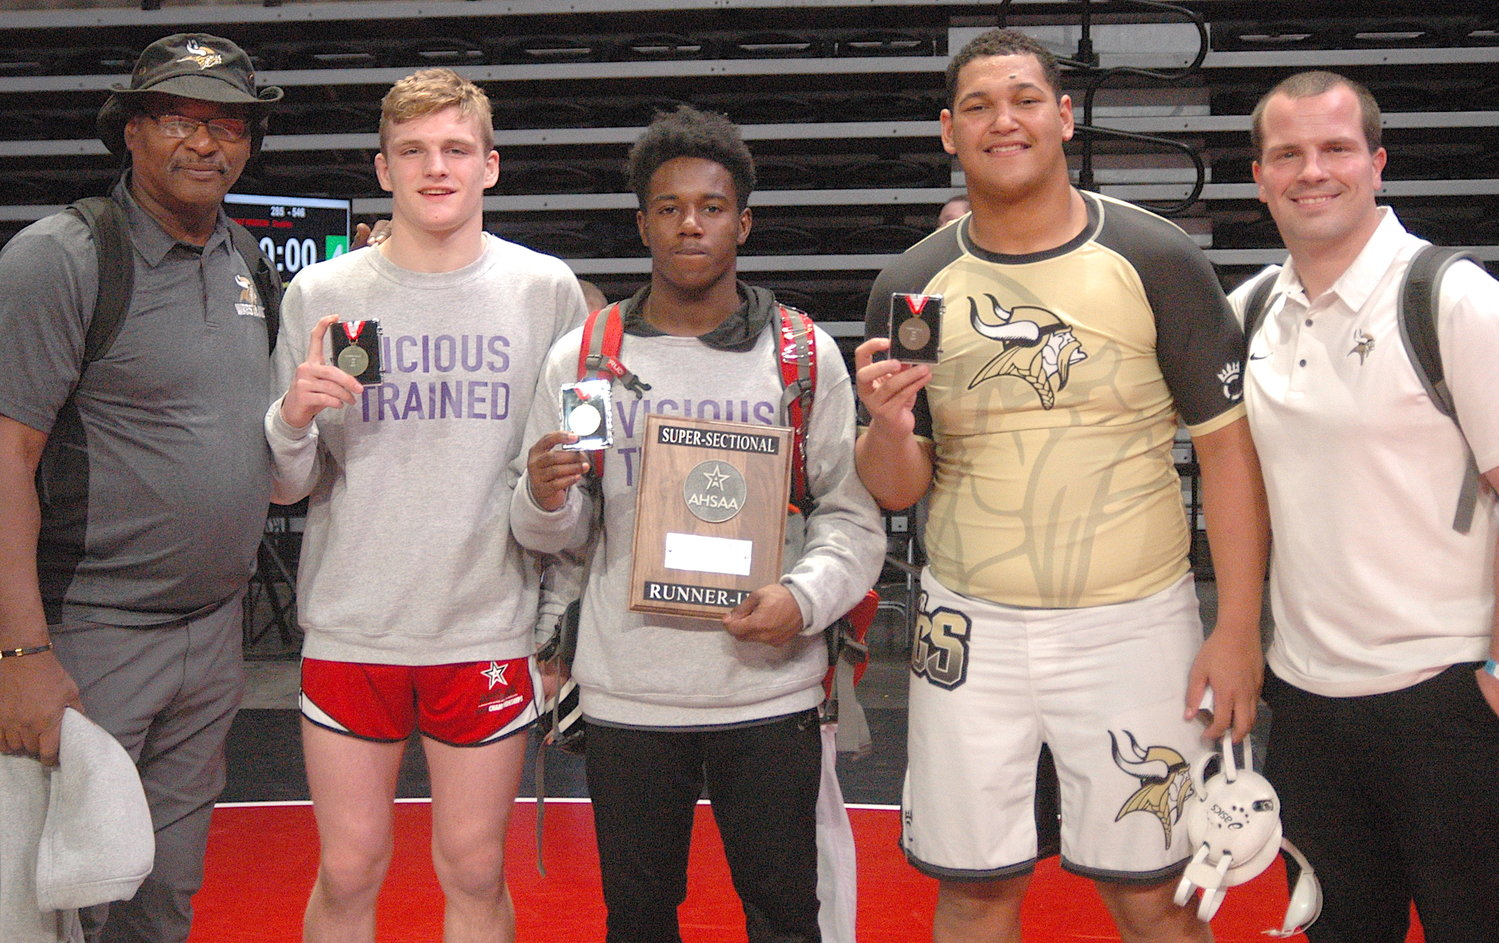 Three Jasper High School wrestlers won North Super Section titles on Saturday at the Birmingham Crossplex's Bill Harris Arena. Pictured from left, Jasper assistant coach Hezzie Morgan, Preston Reed (152 pounds), Maney Havis (145 pounds), Brodie Vinson (285 pounds) and head coach Tripp Otis. All three Jasper wrestlers will compete in the State Wrestling Tournament next week in Huntsville.